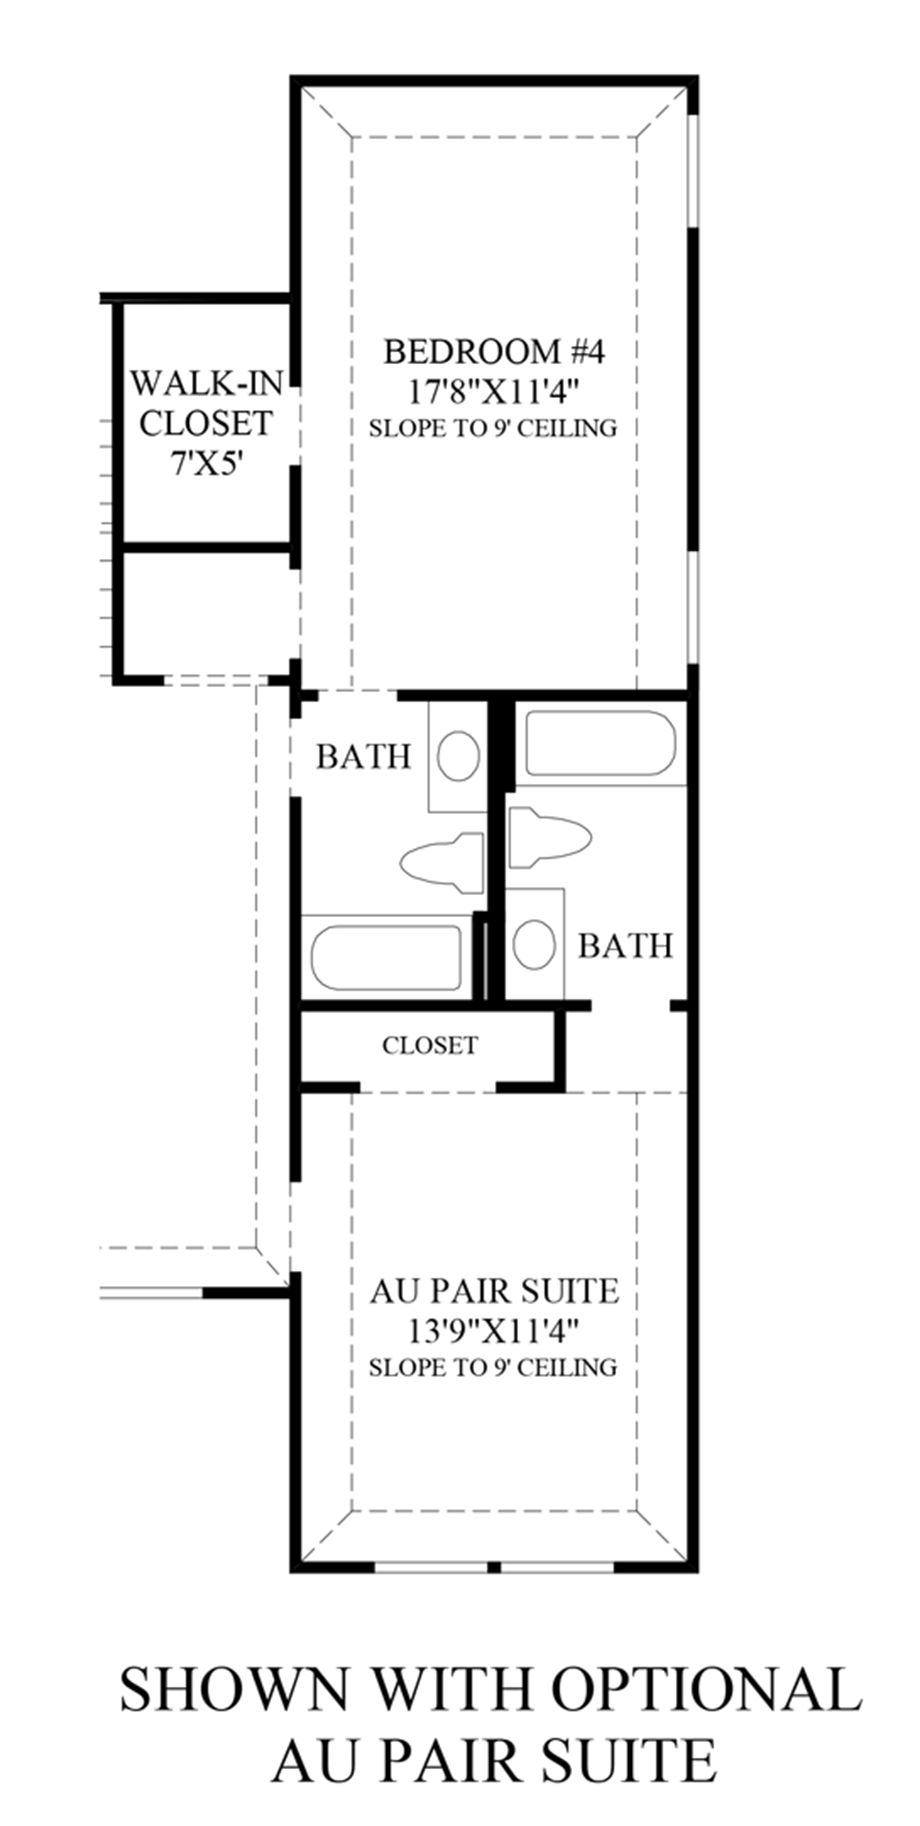 Optional Au Pair Suite Floor Plan